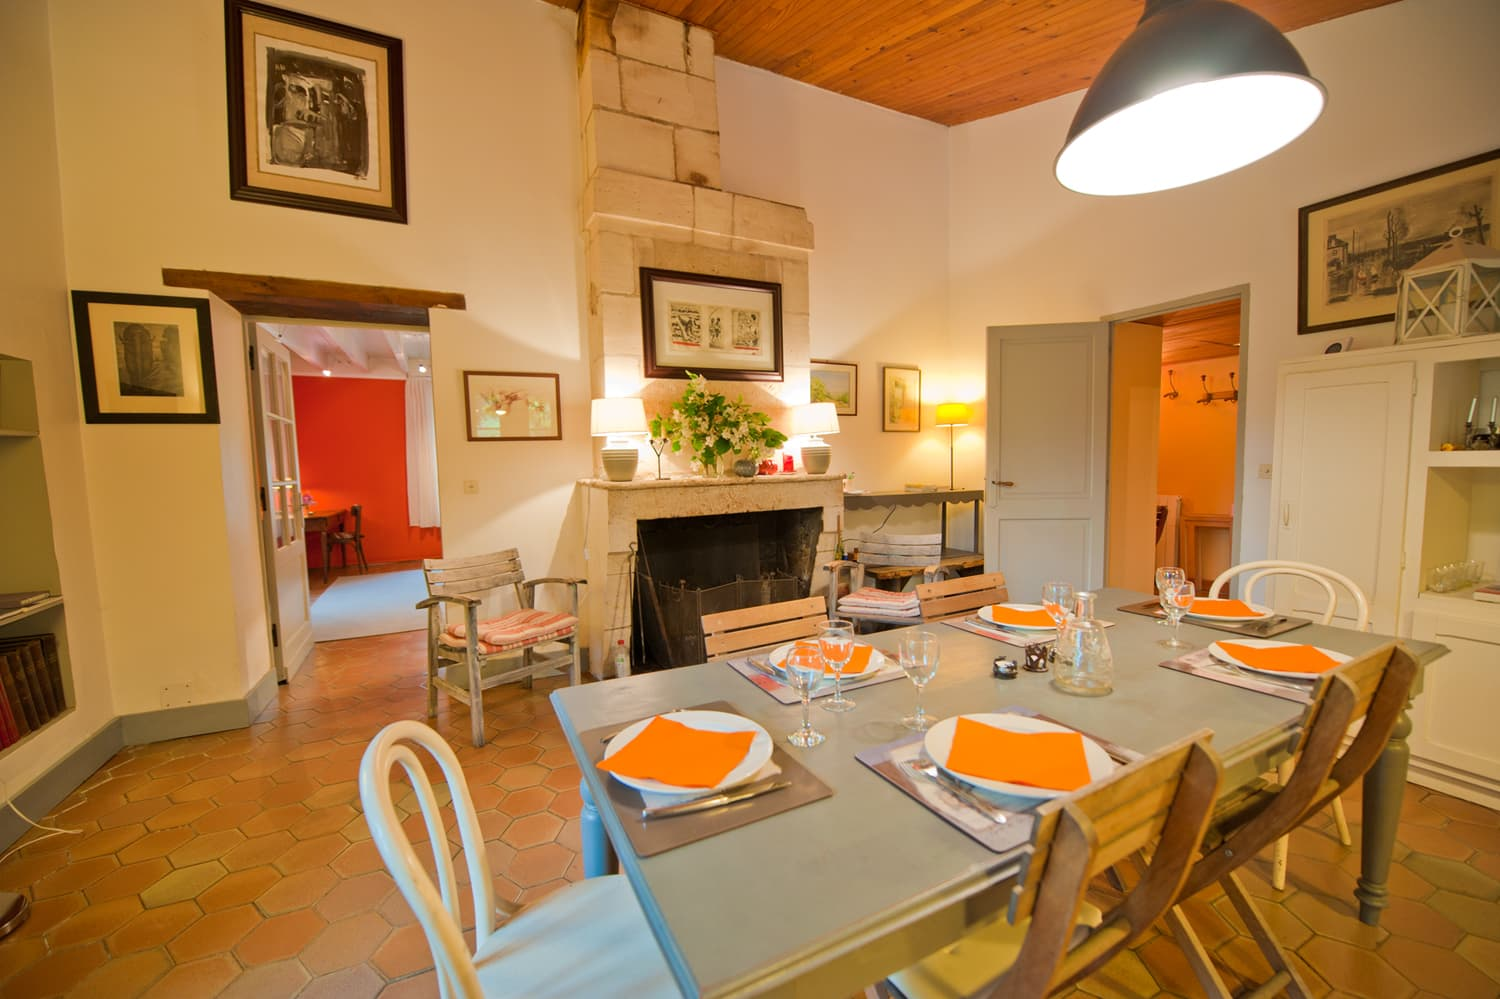 Dining room in South West France rental home